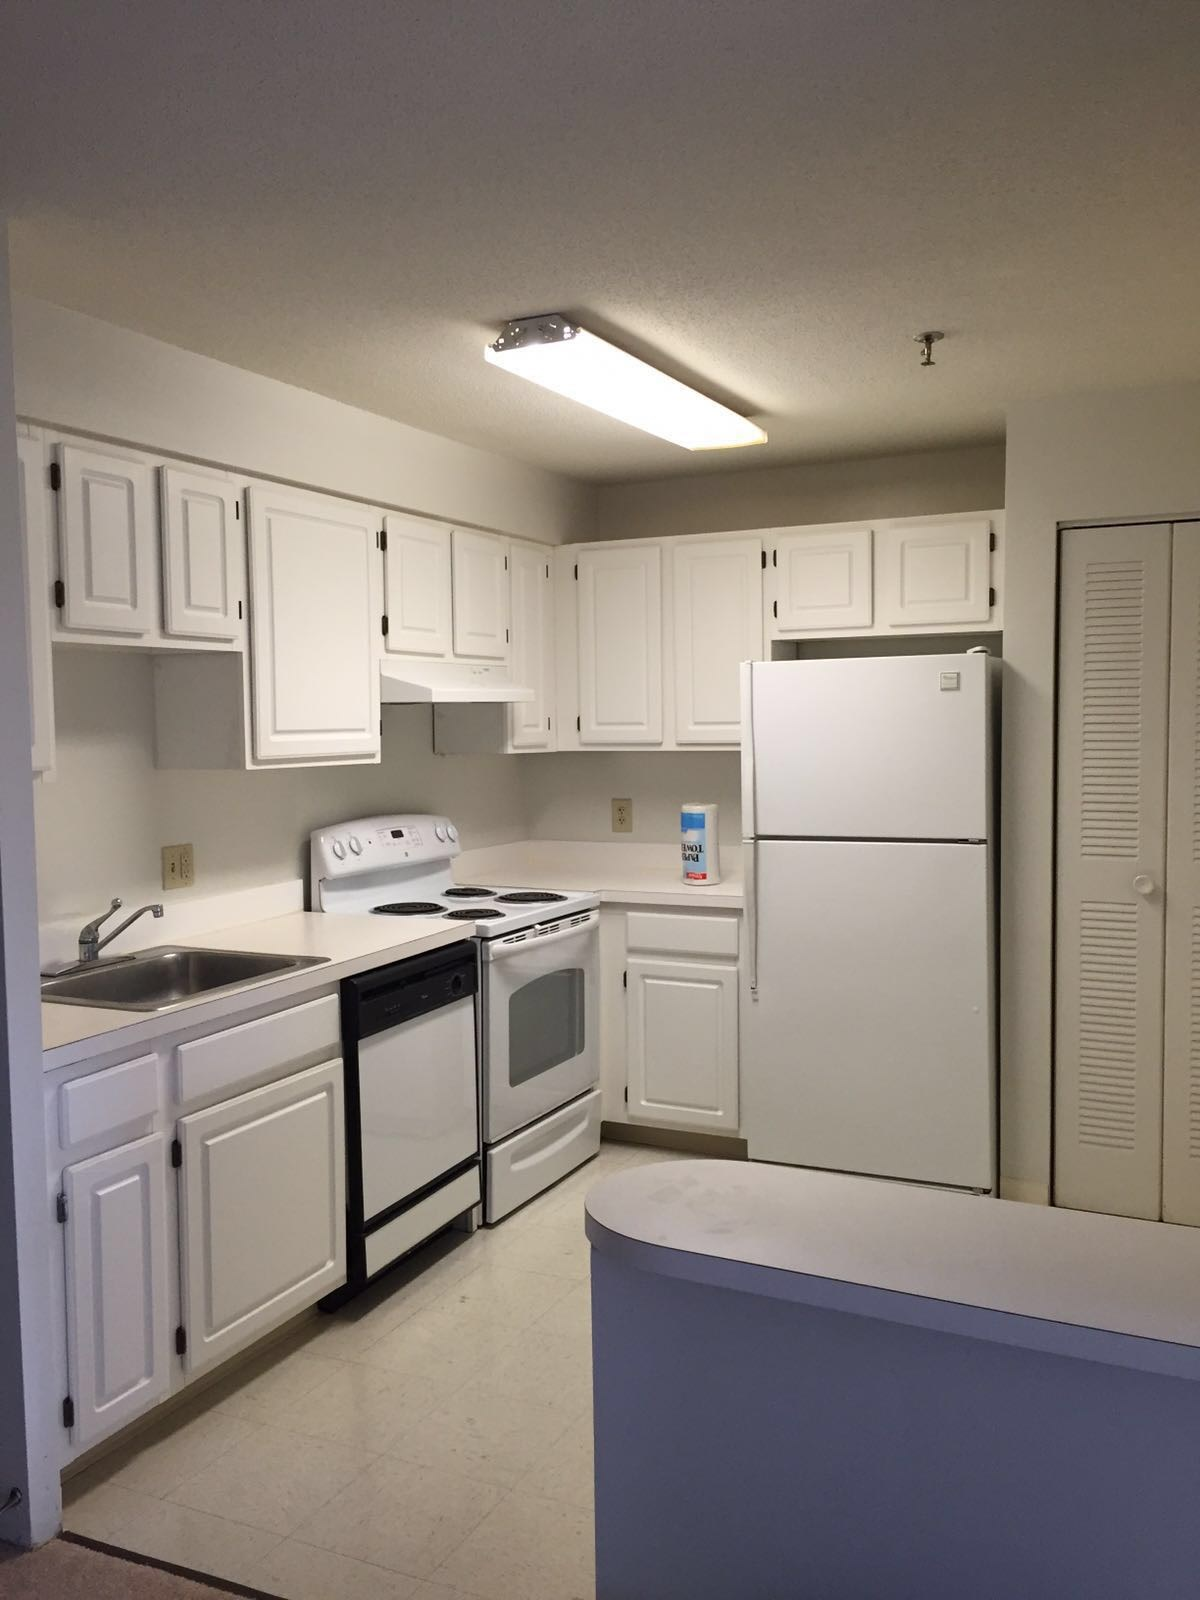 shared master bedroom available in a 2 bhk apartment in malden ma